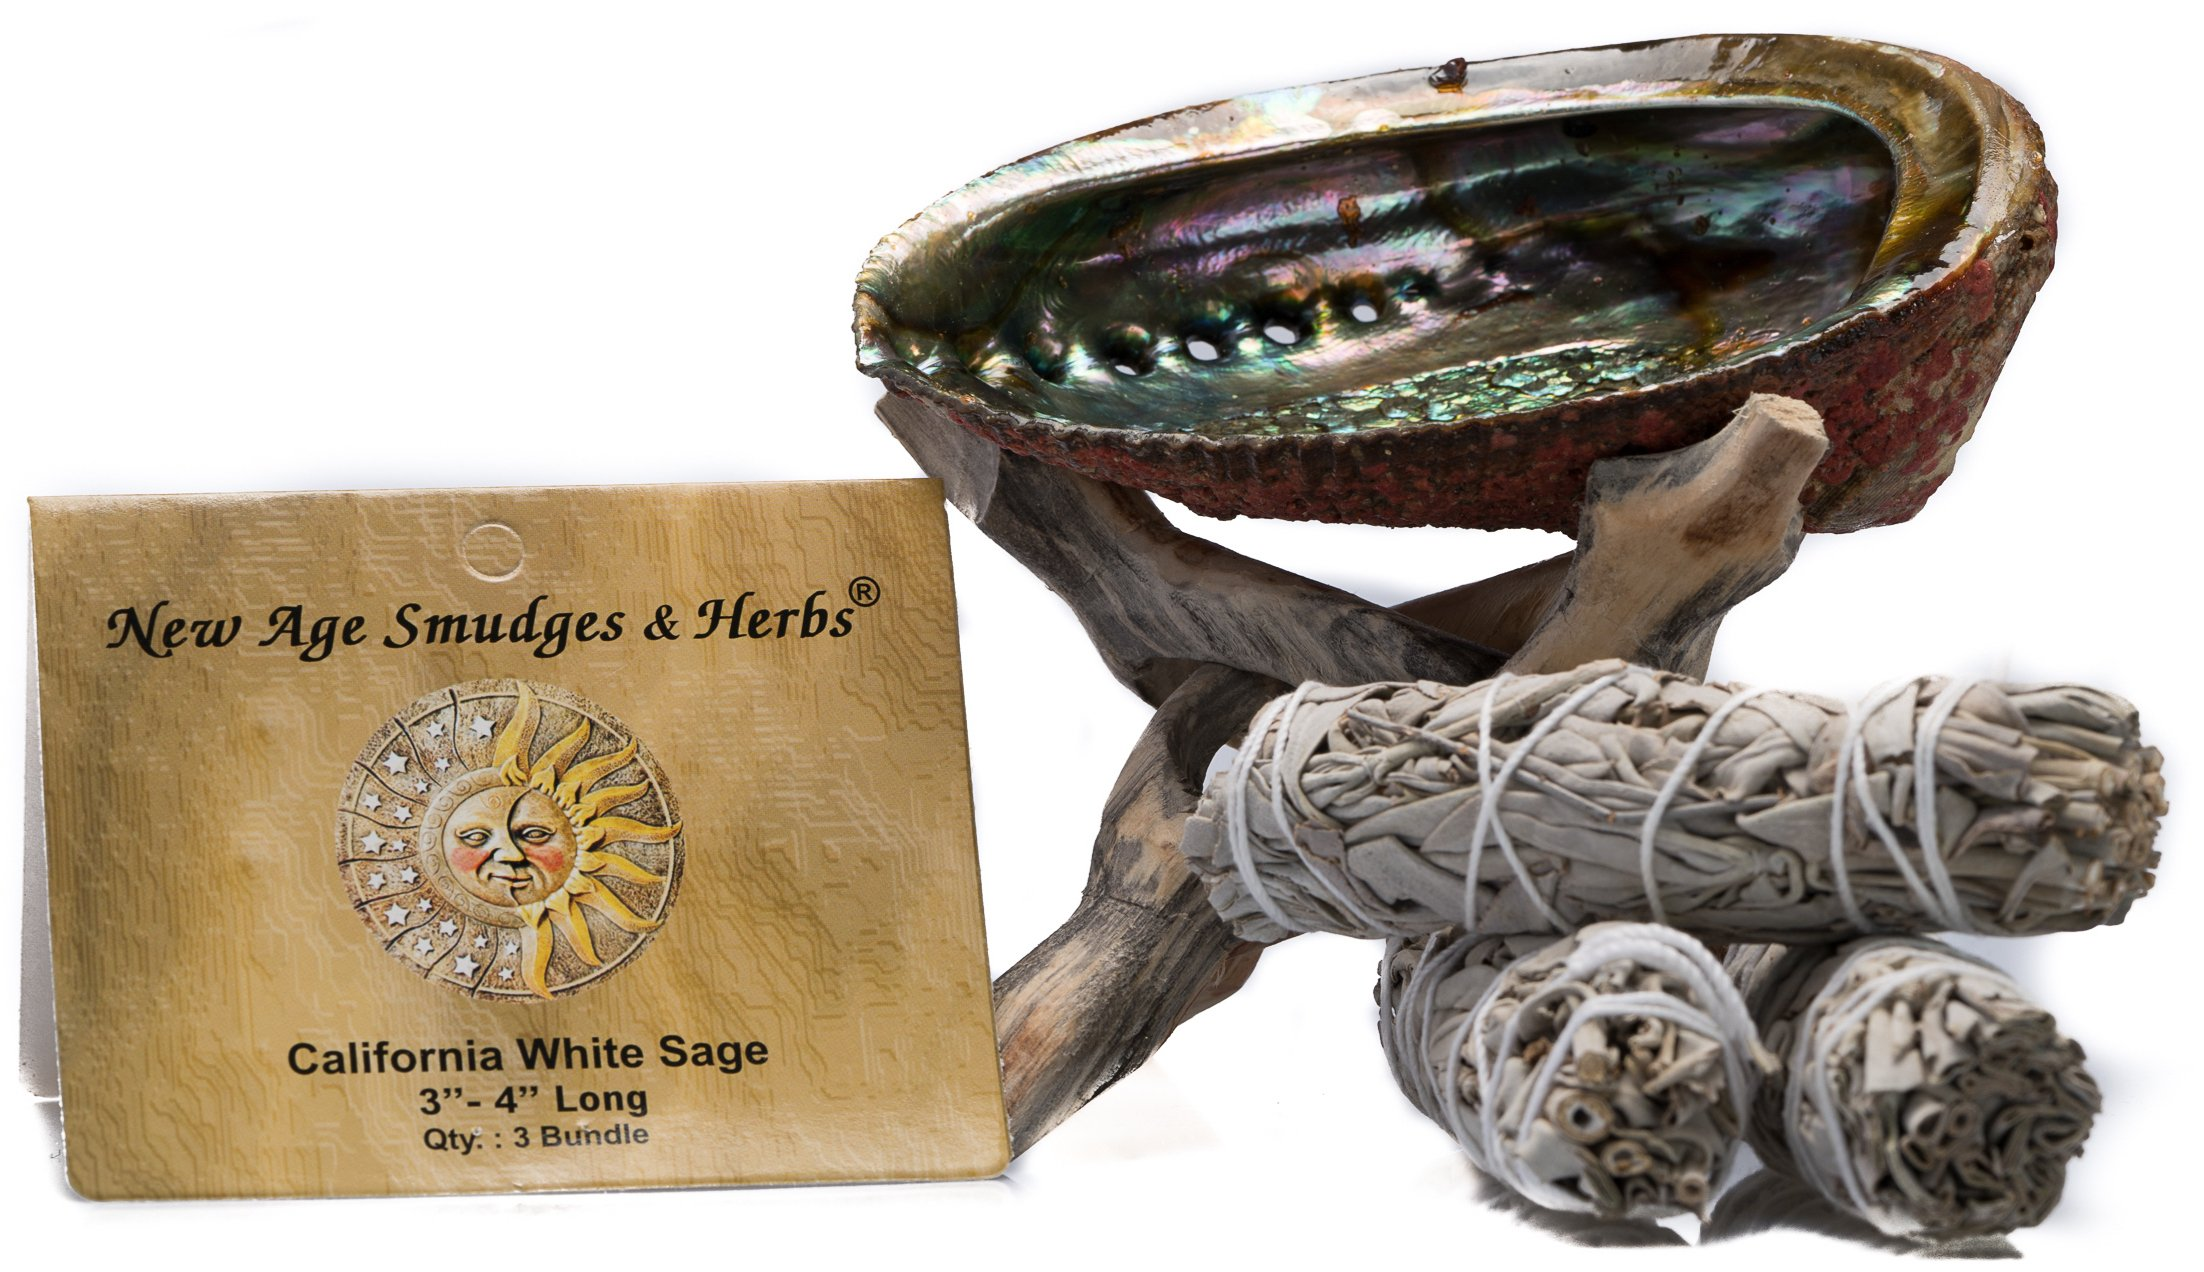 Smudging Kit - 3 California White Sage Smudging Wands (Salvia Apiana) with Beautiful Natural 5 in - 6 in Abalone Shell, Kit Includes Natural Wooden Cobra Tripod Stand - Sage Sticks - 3'' - 4'' length by New Age Smudges & Herbs